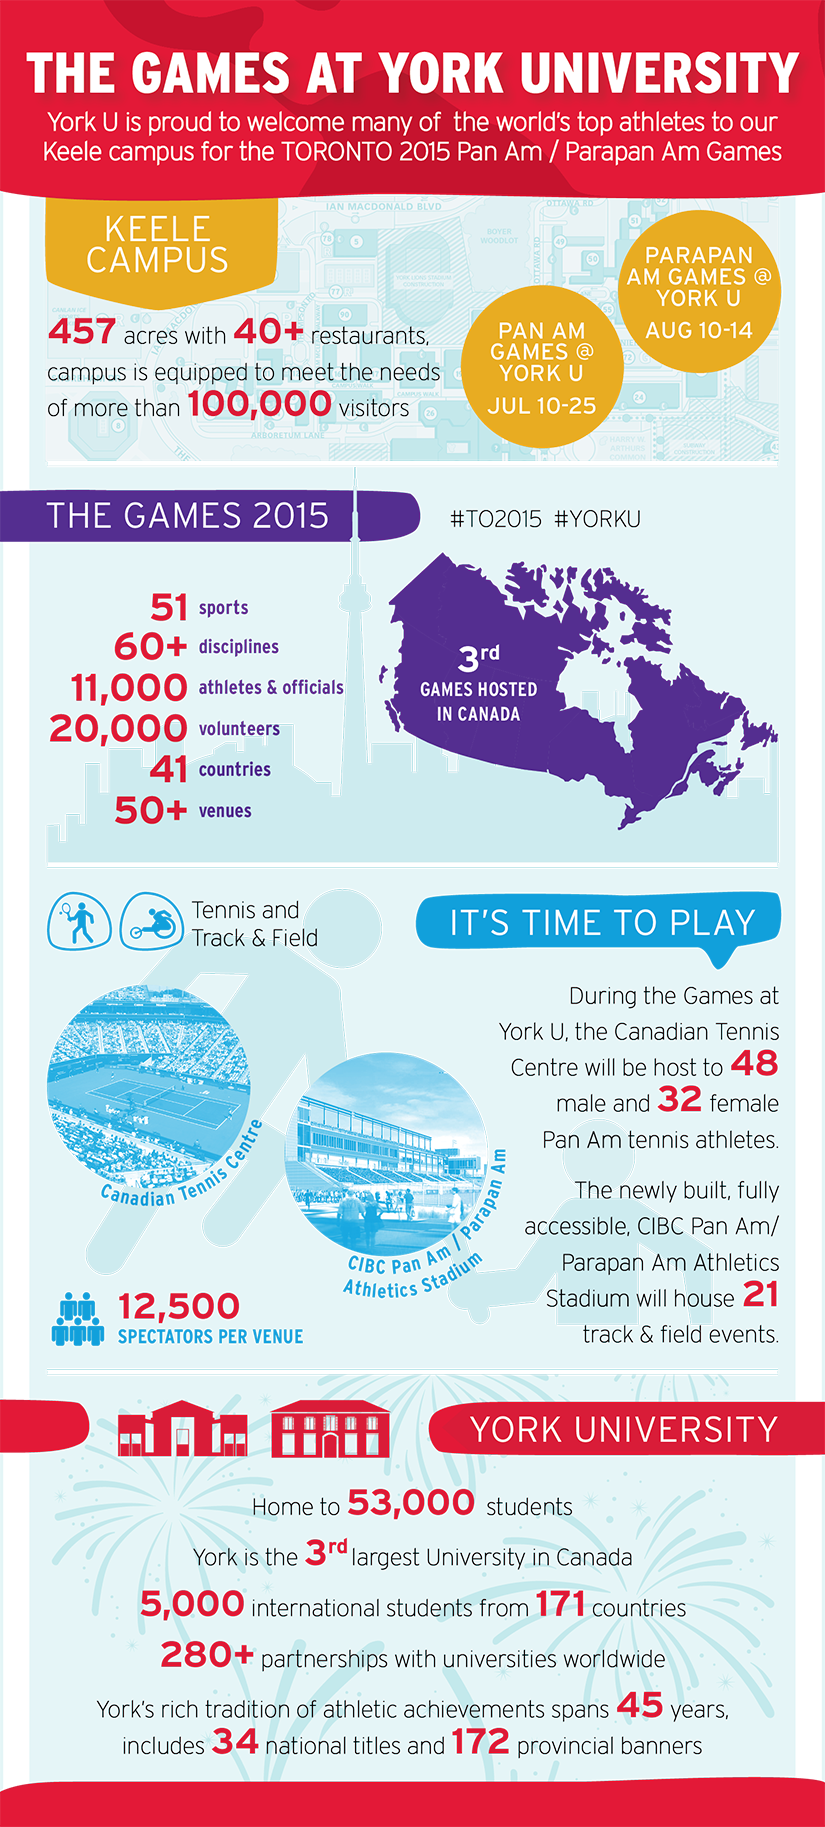 The Games at York University. Statistics about the TORONTO 2015 games, the track and field and tennis events, and York University